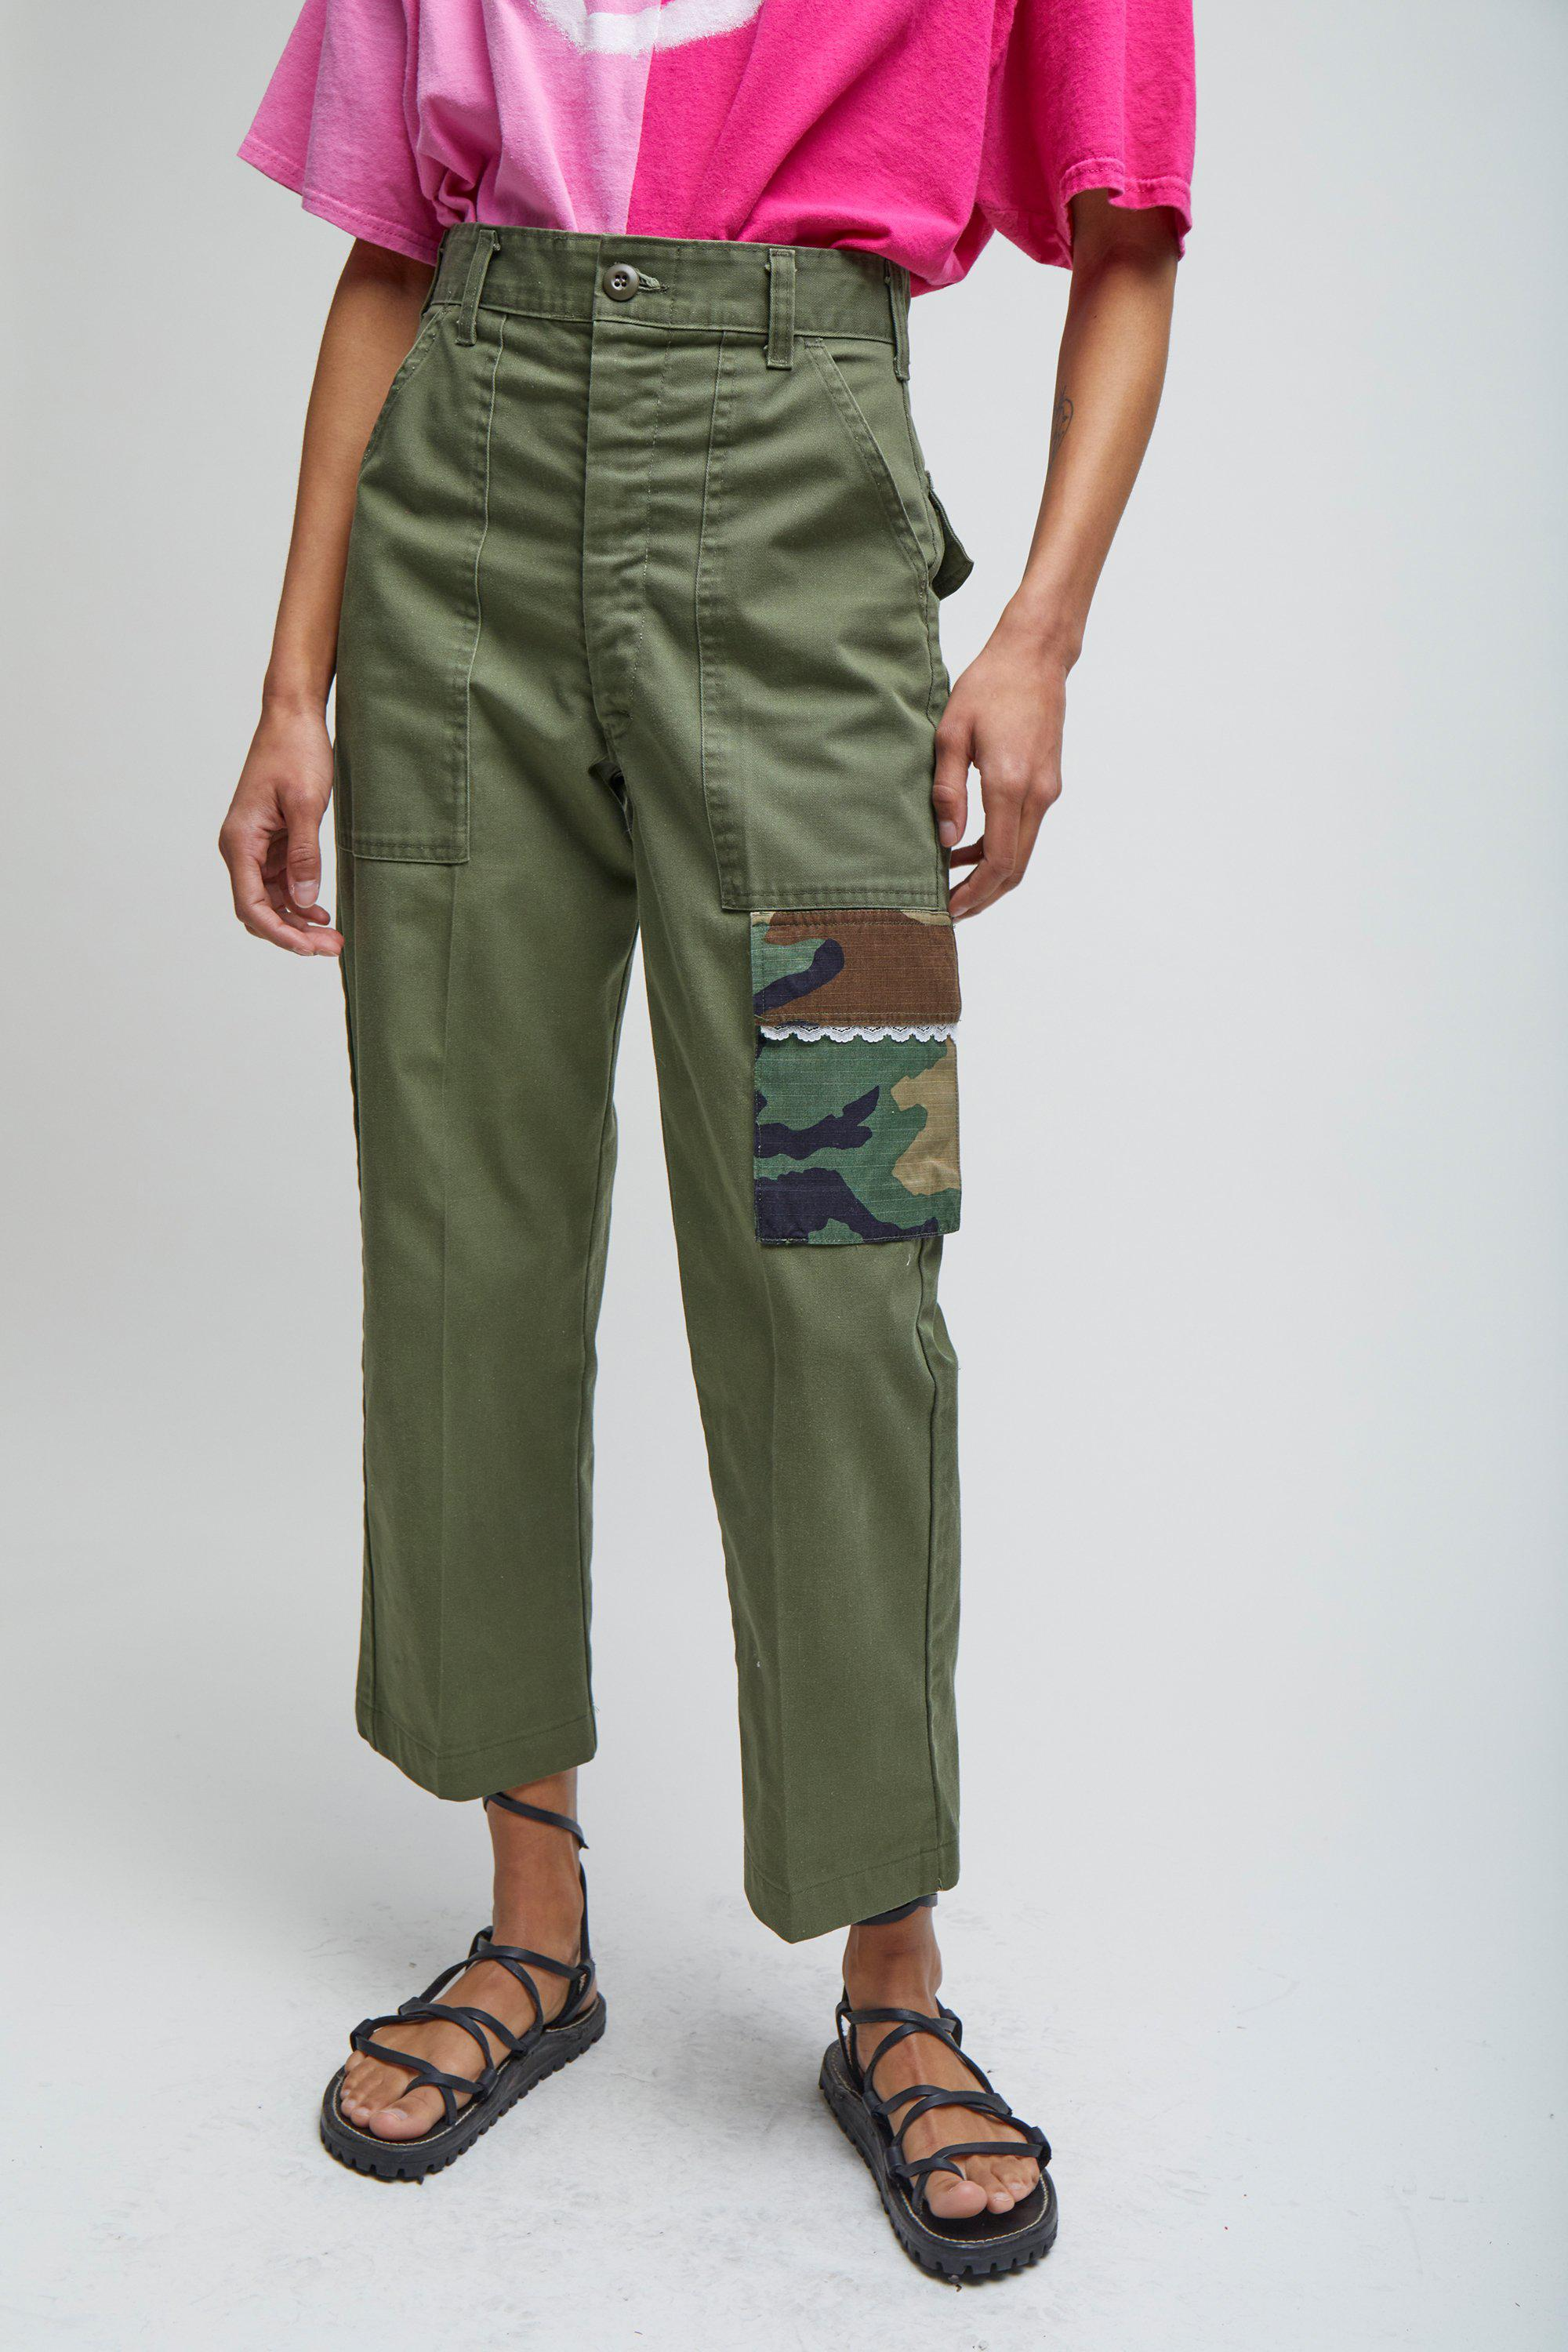 CROPPED CARGO TROUSERS - XS 1